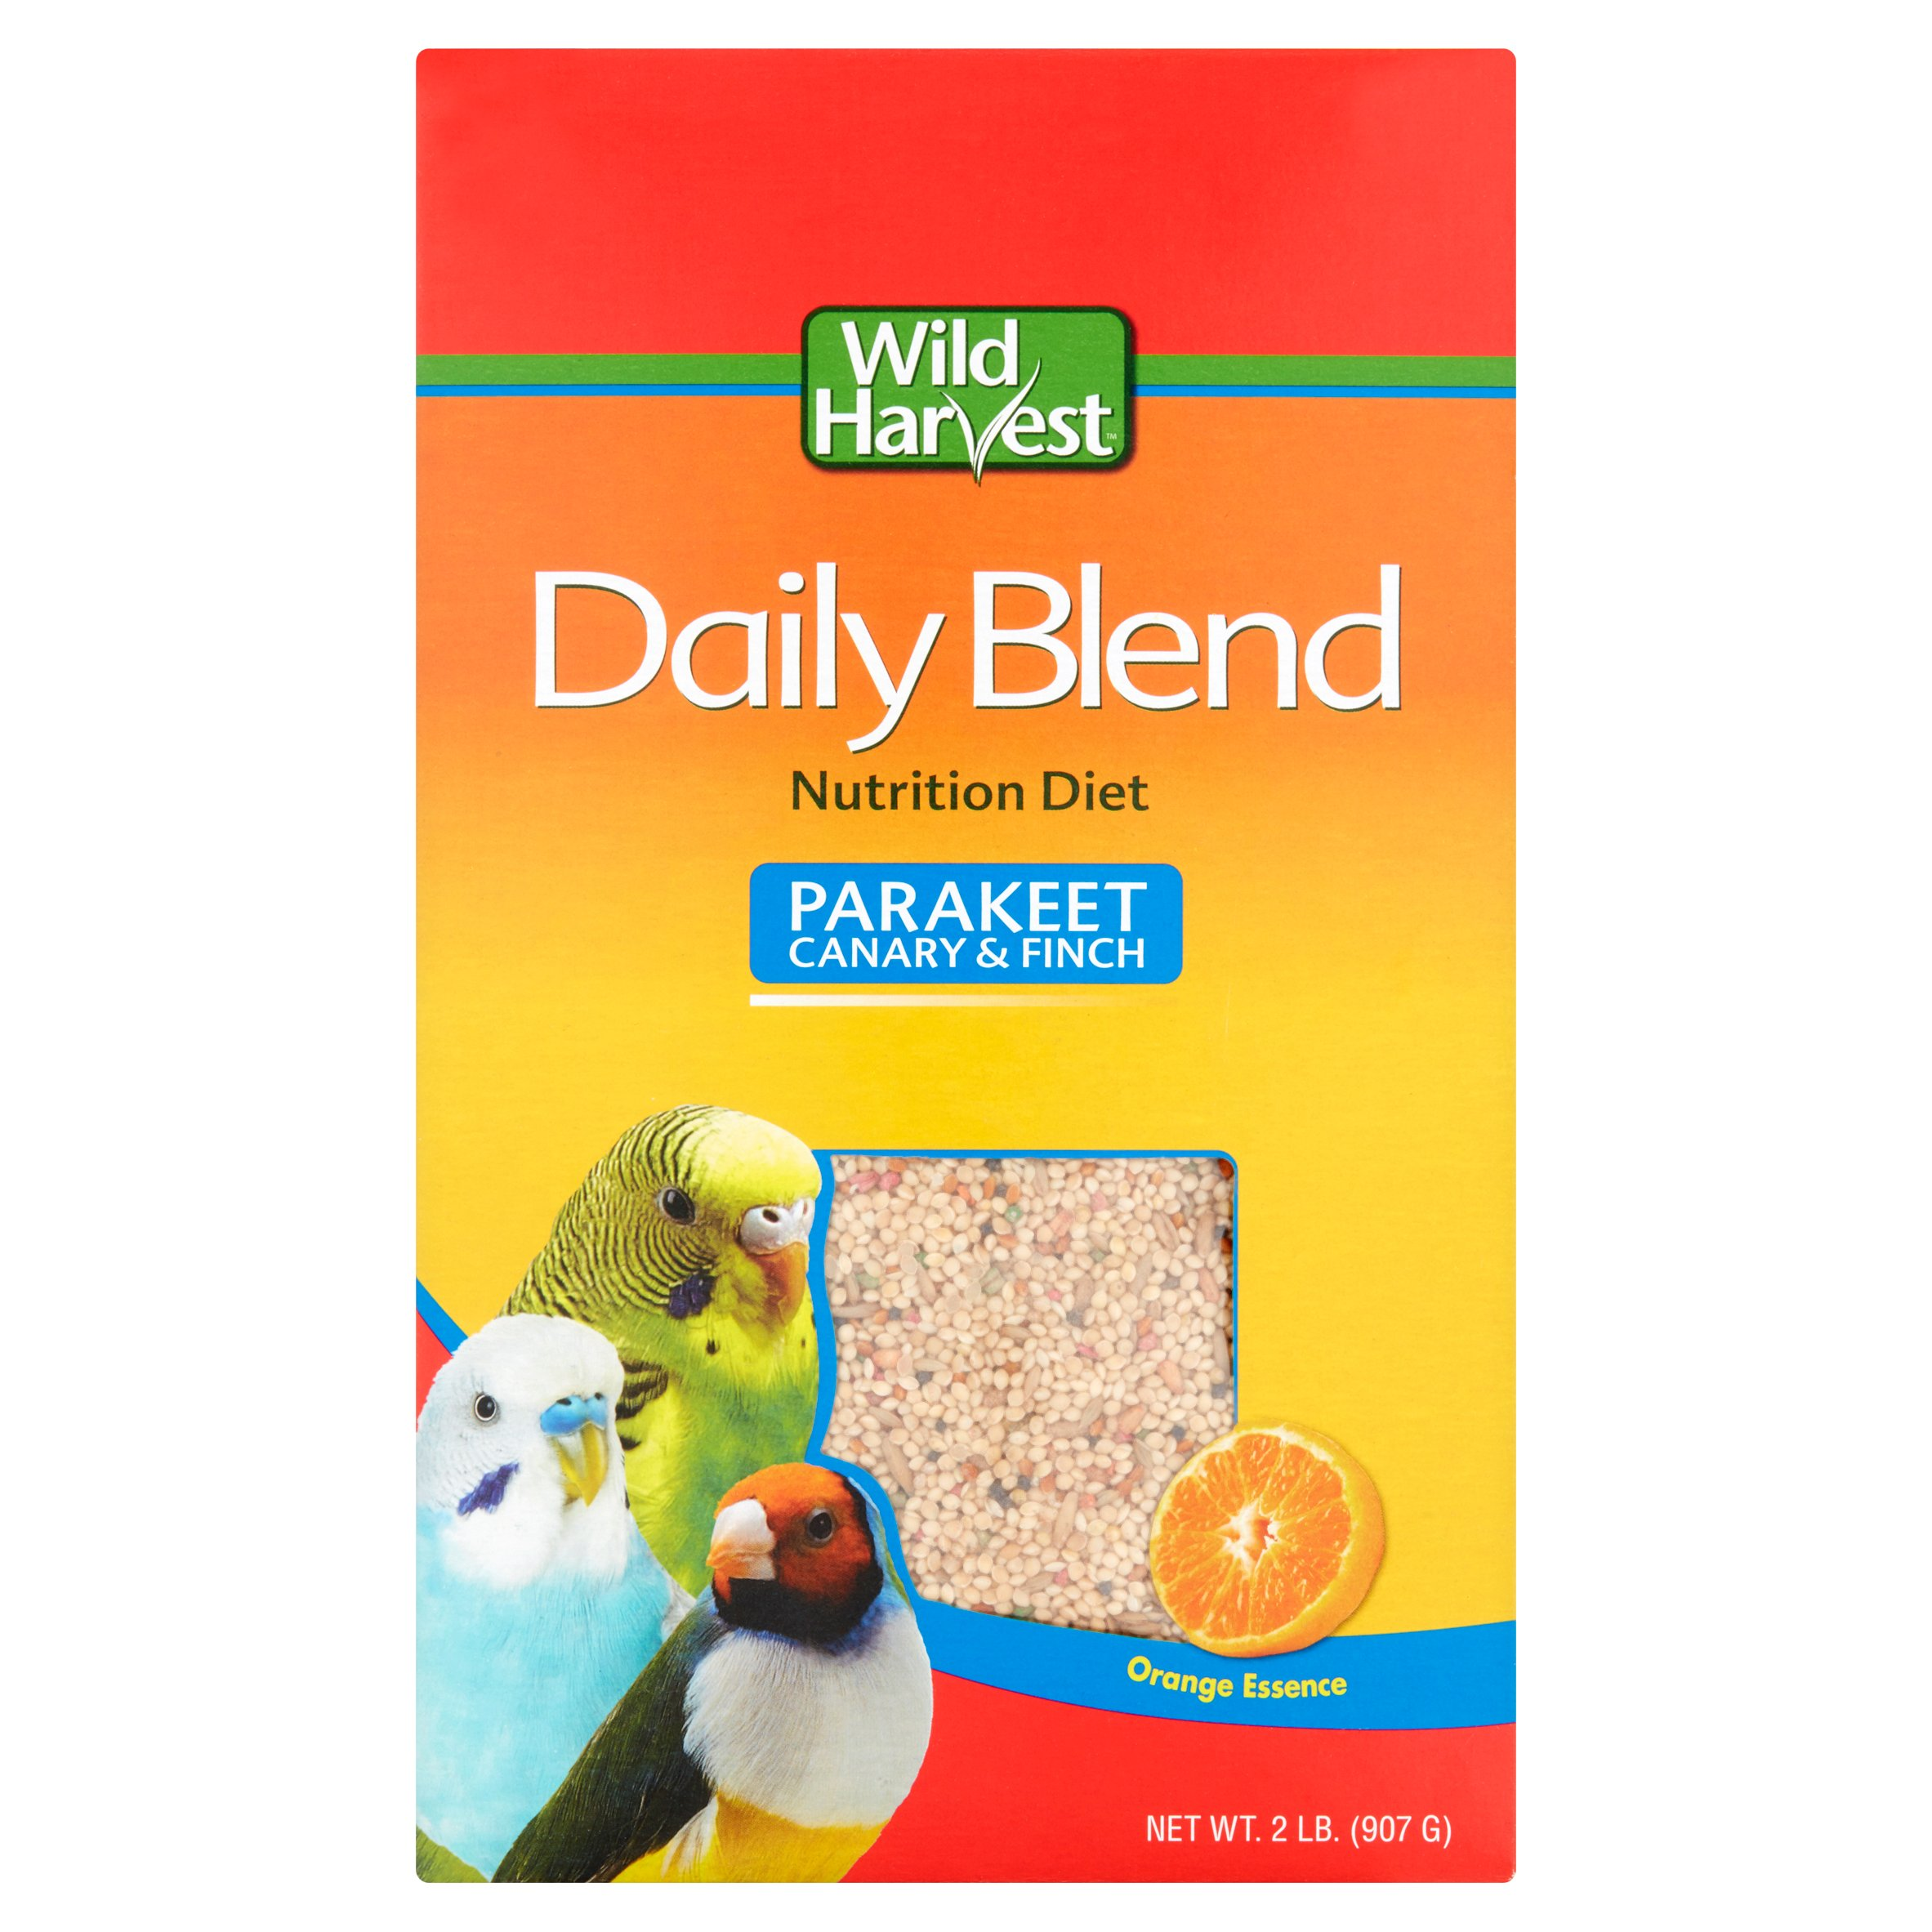 (3 Pack) Wild Harvest Daily Blend for Parakeet, Canary & Finch, 2 lb